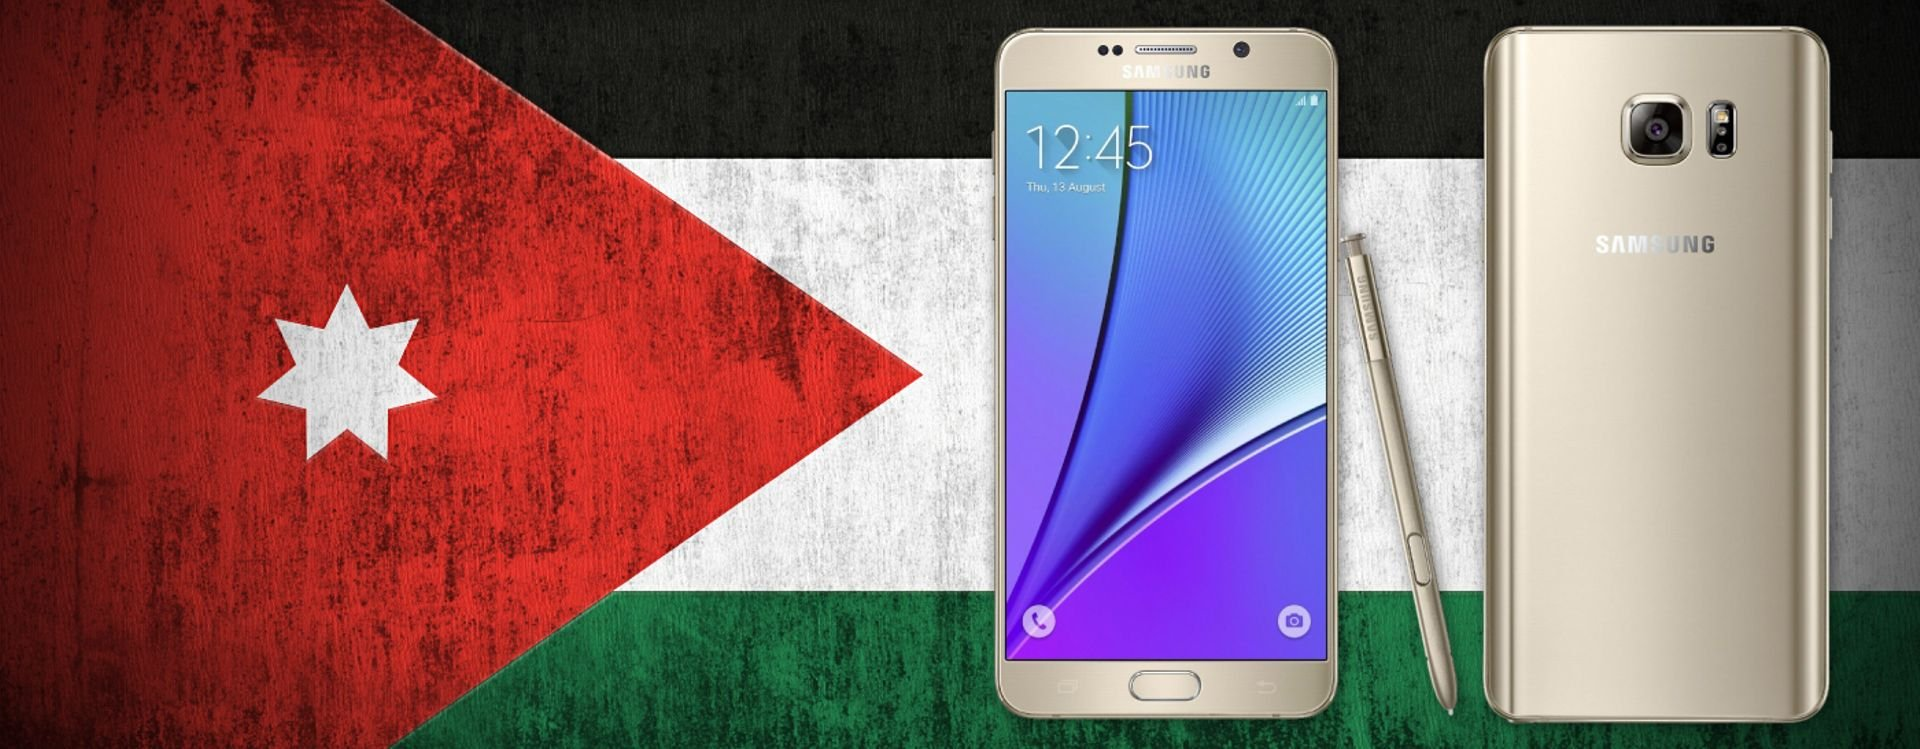 Most common smartphones in Jordan